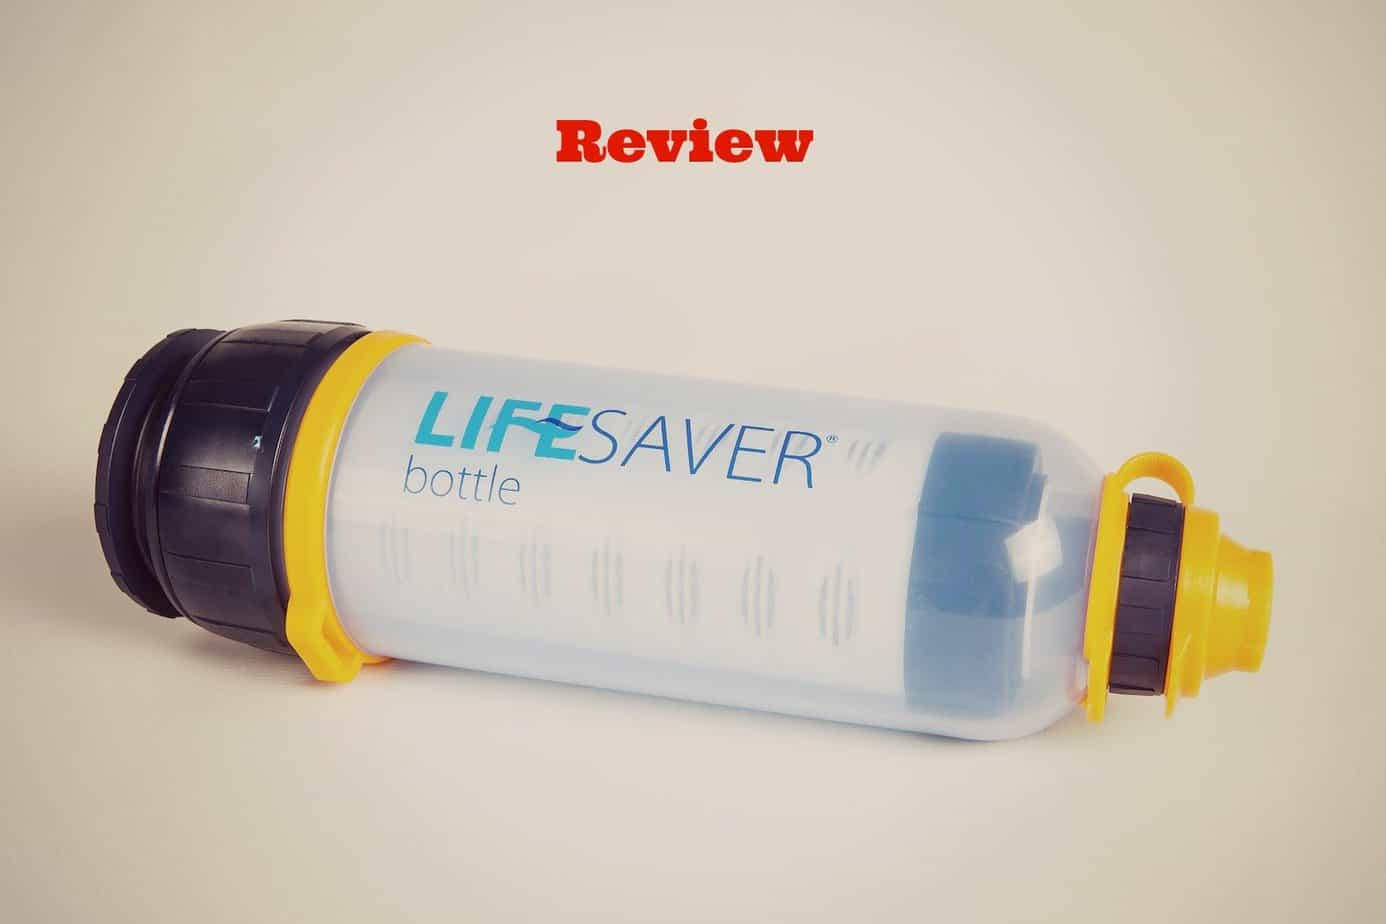 The Lifesaver 4000UF Bottle Review: Does This Clean Water System Work?